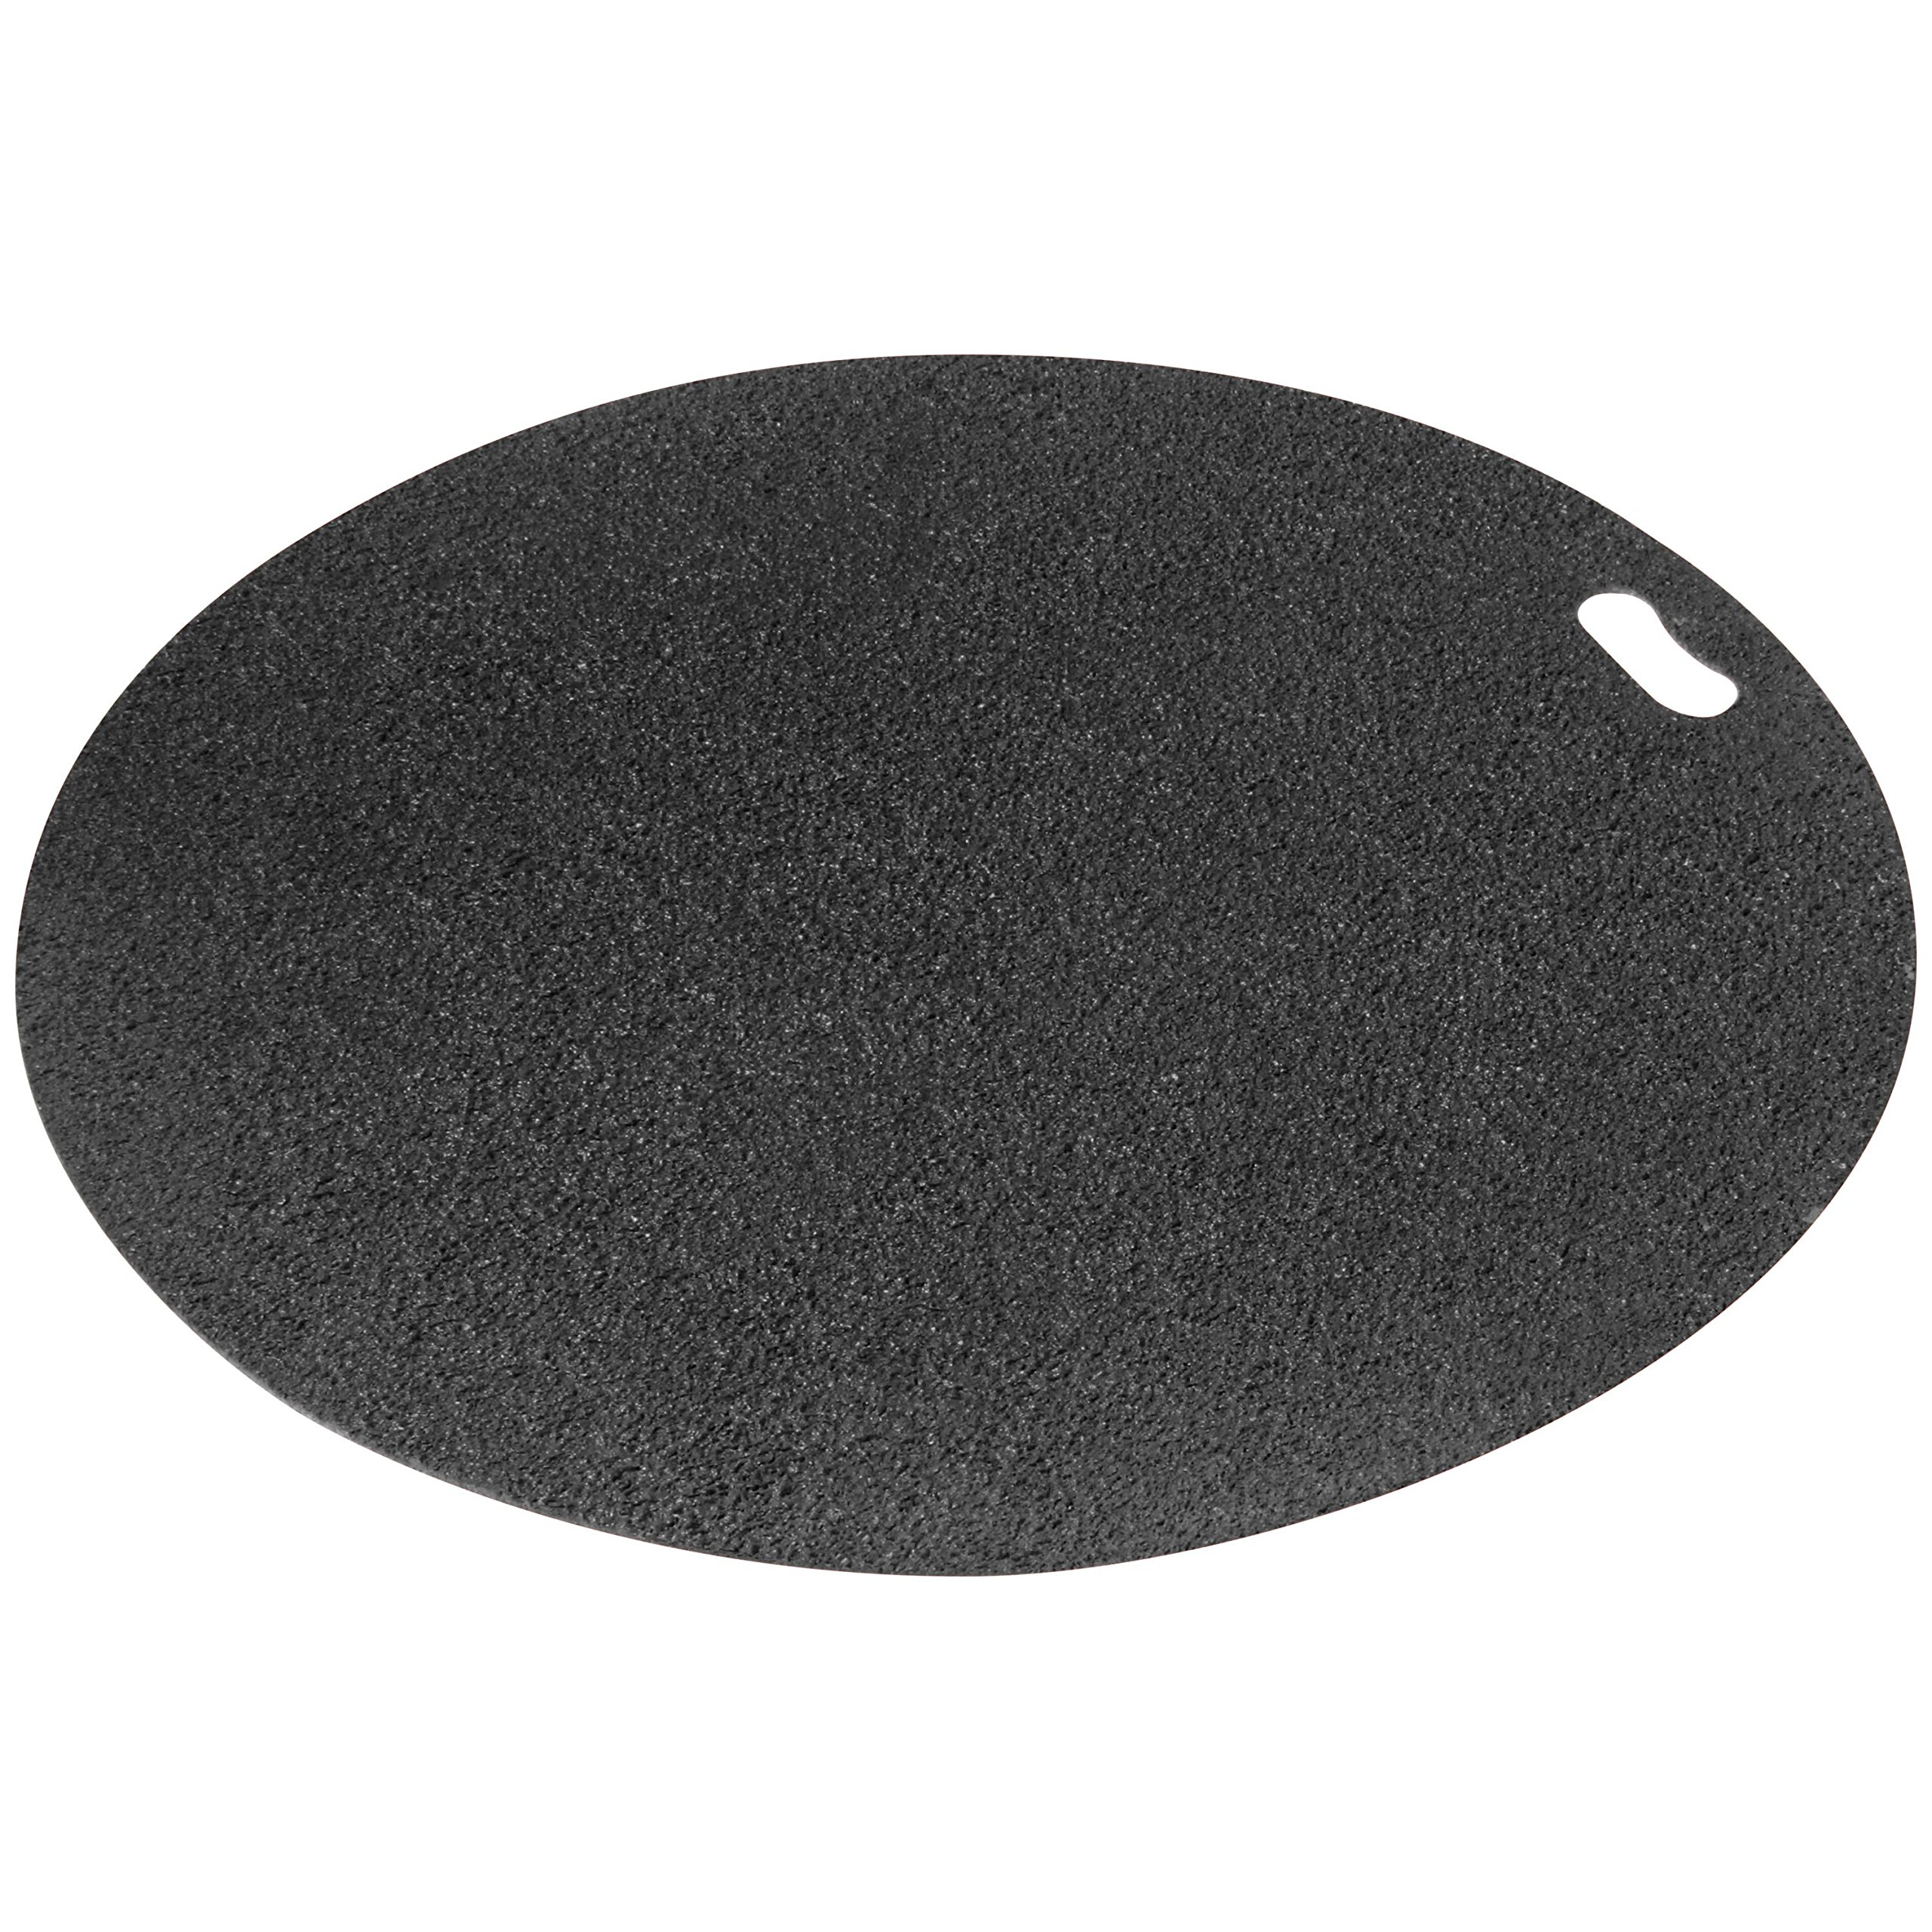 Diversitech Original Grill Mat - BBQ Floor Mat - Put Under Gas Grill, Fryer, Fire Pit - Protects Decks and Patios - 30 Inches - Round -  Gray by Diversitech Original